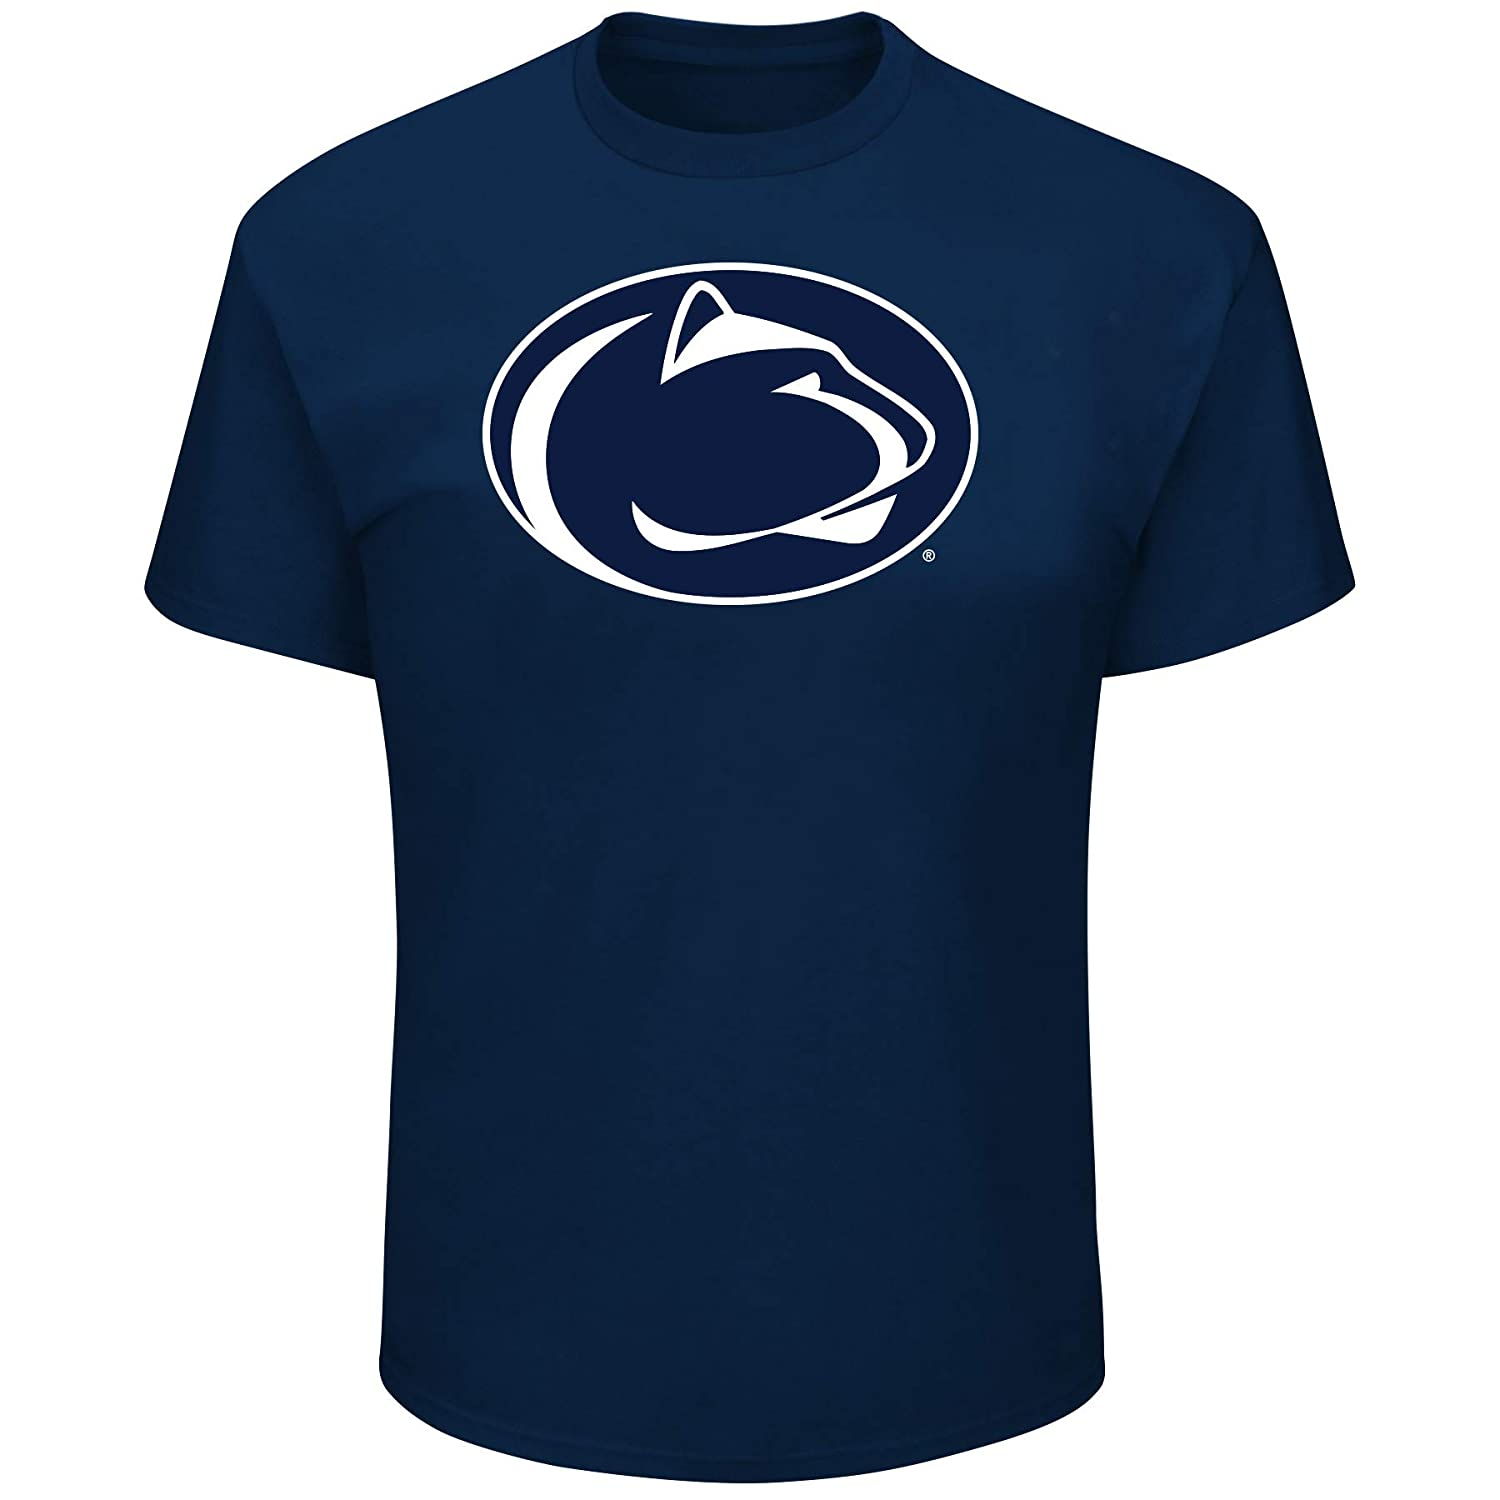 Navy 6X University of Penn State Mens Big and Tall Short Sleeve Cotton Tee Shirt